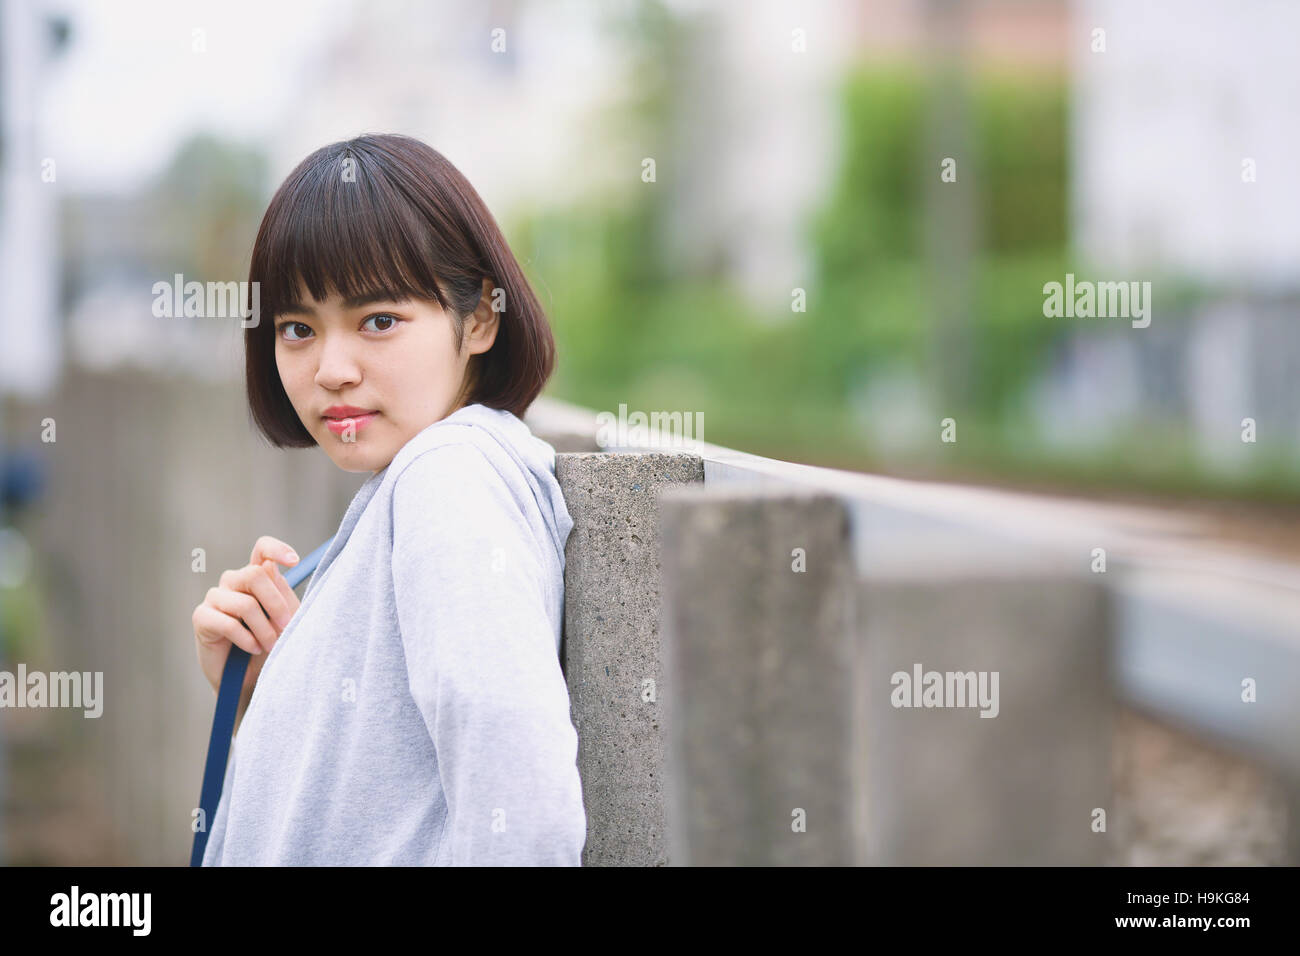 Young Japanese woman by a railway track outside Stock Photo